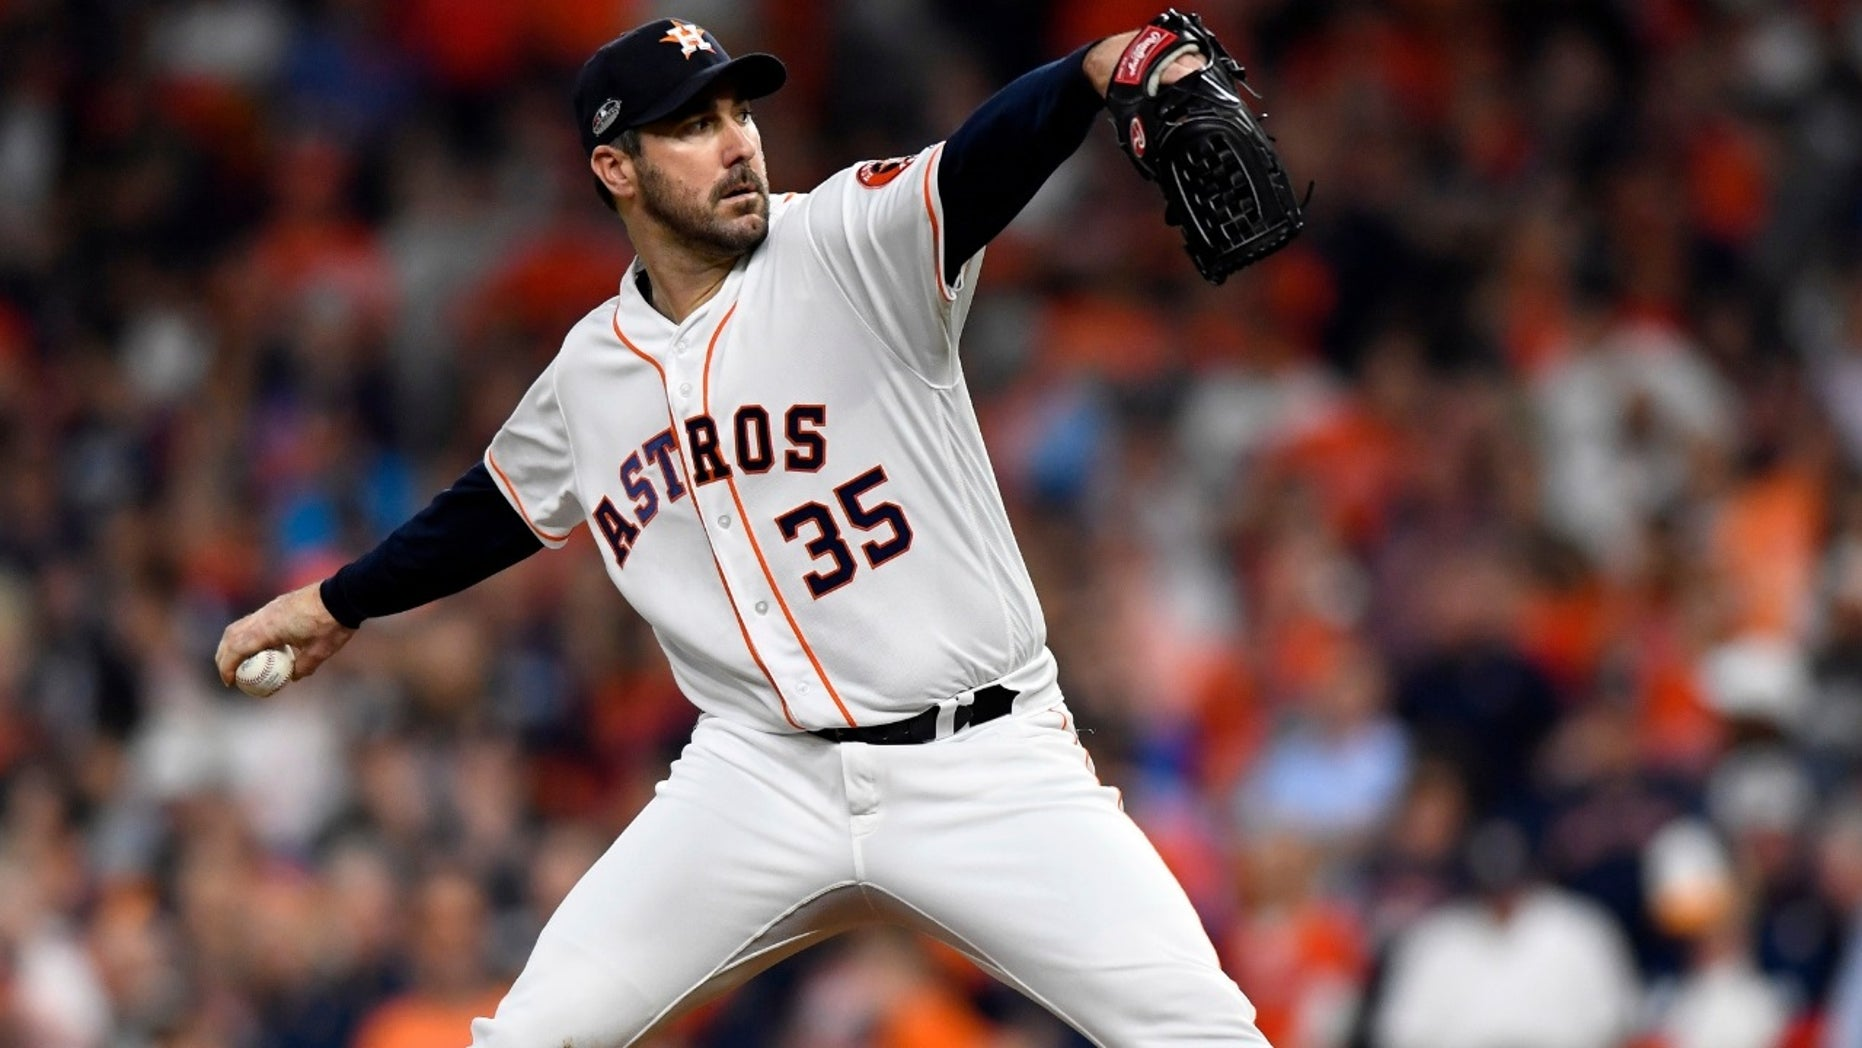 Cy Young Award-winning pitcher Justin Verlander talked to Fox News about being a new parent while balancing his career.